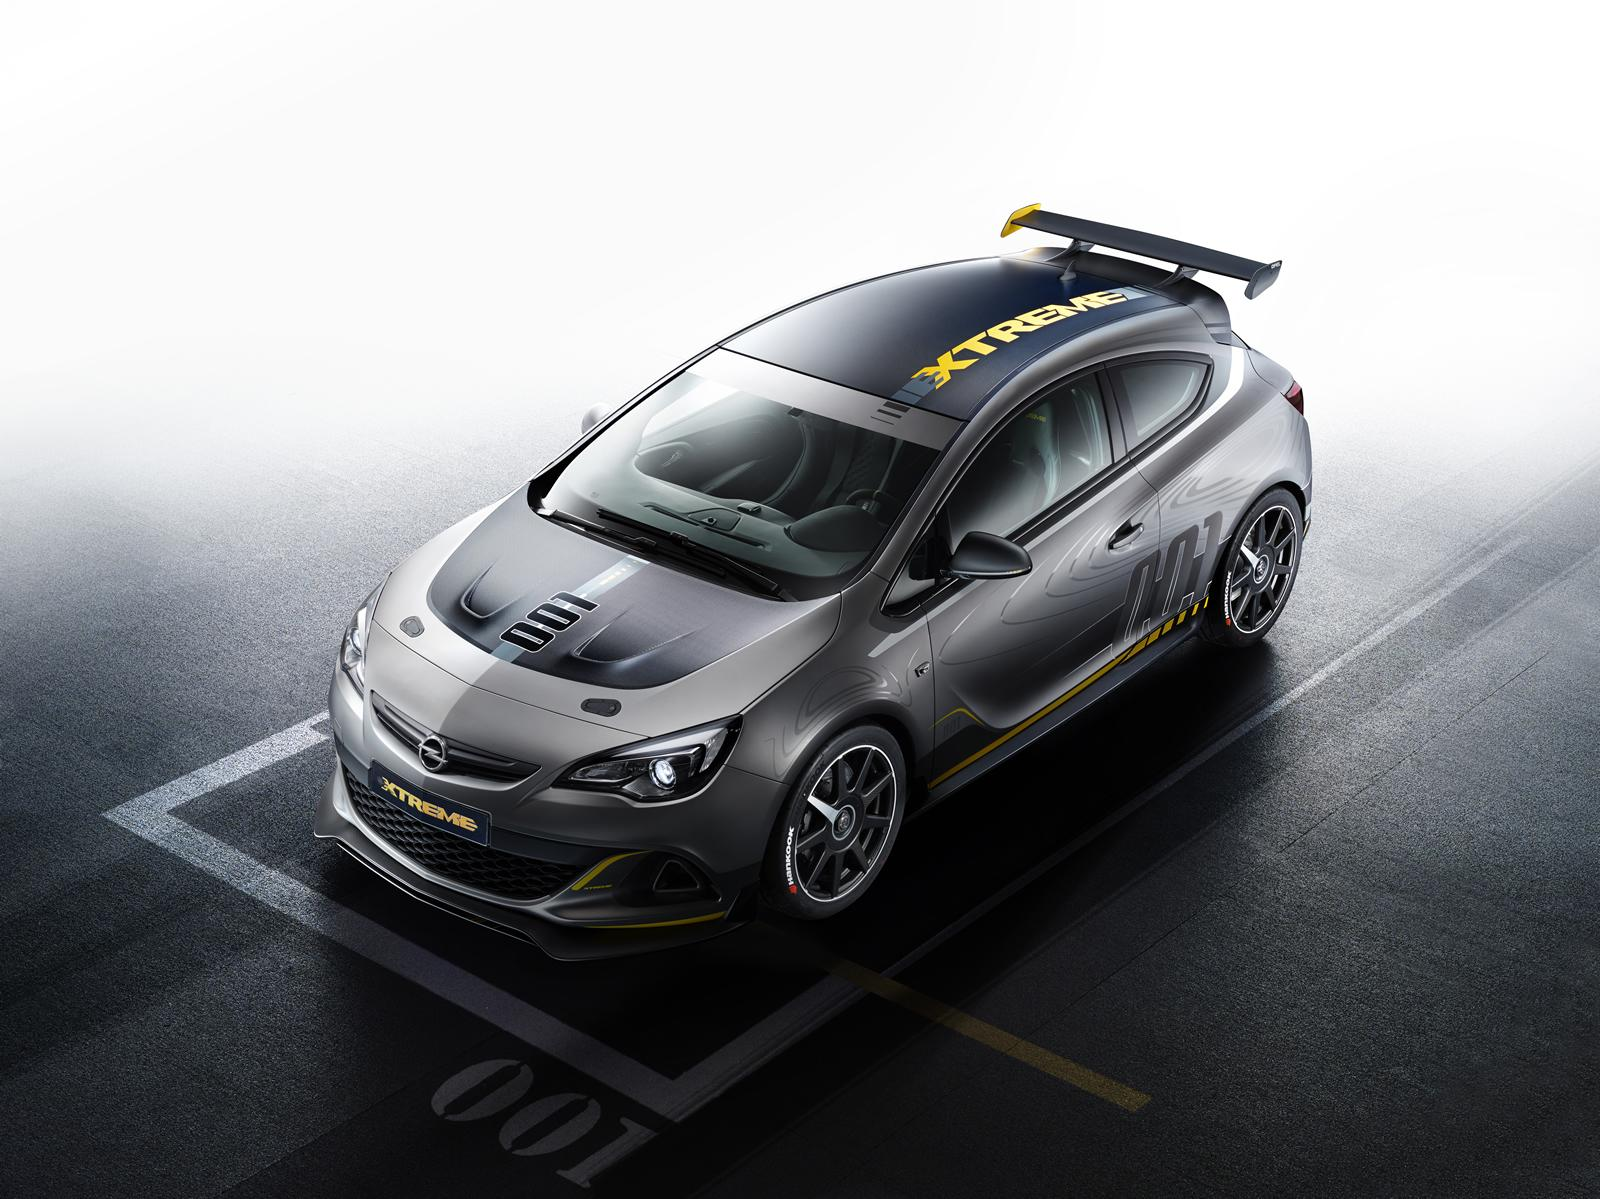 opel astra opc extreme 300 hp hot hatch with carbon fiber autoevolution. Black Bedroom Furniture Sets. Home Design Ideas